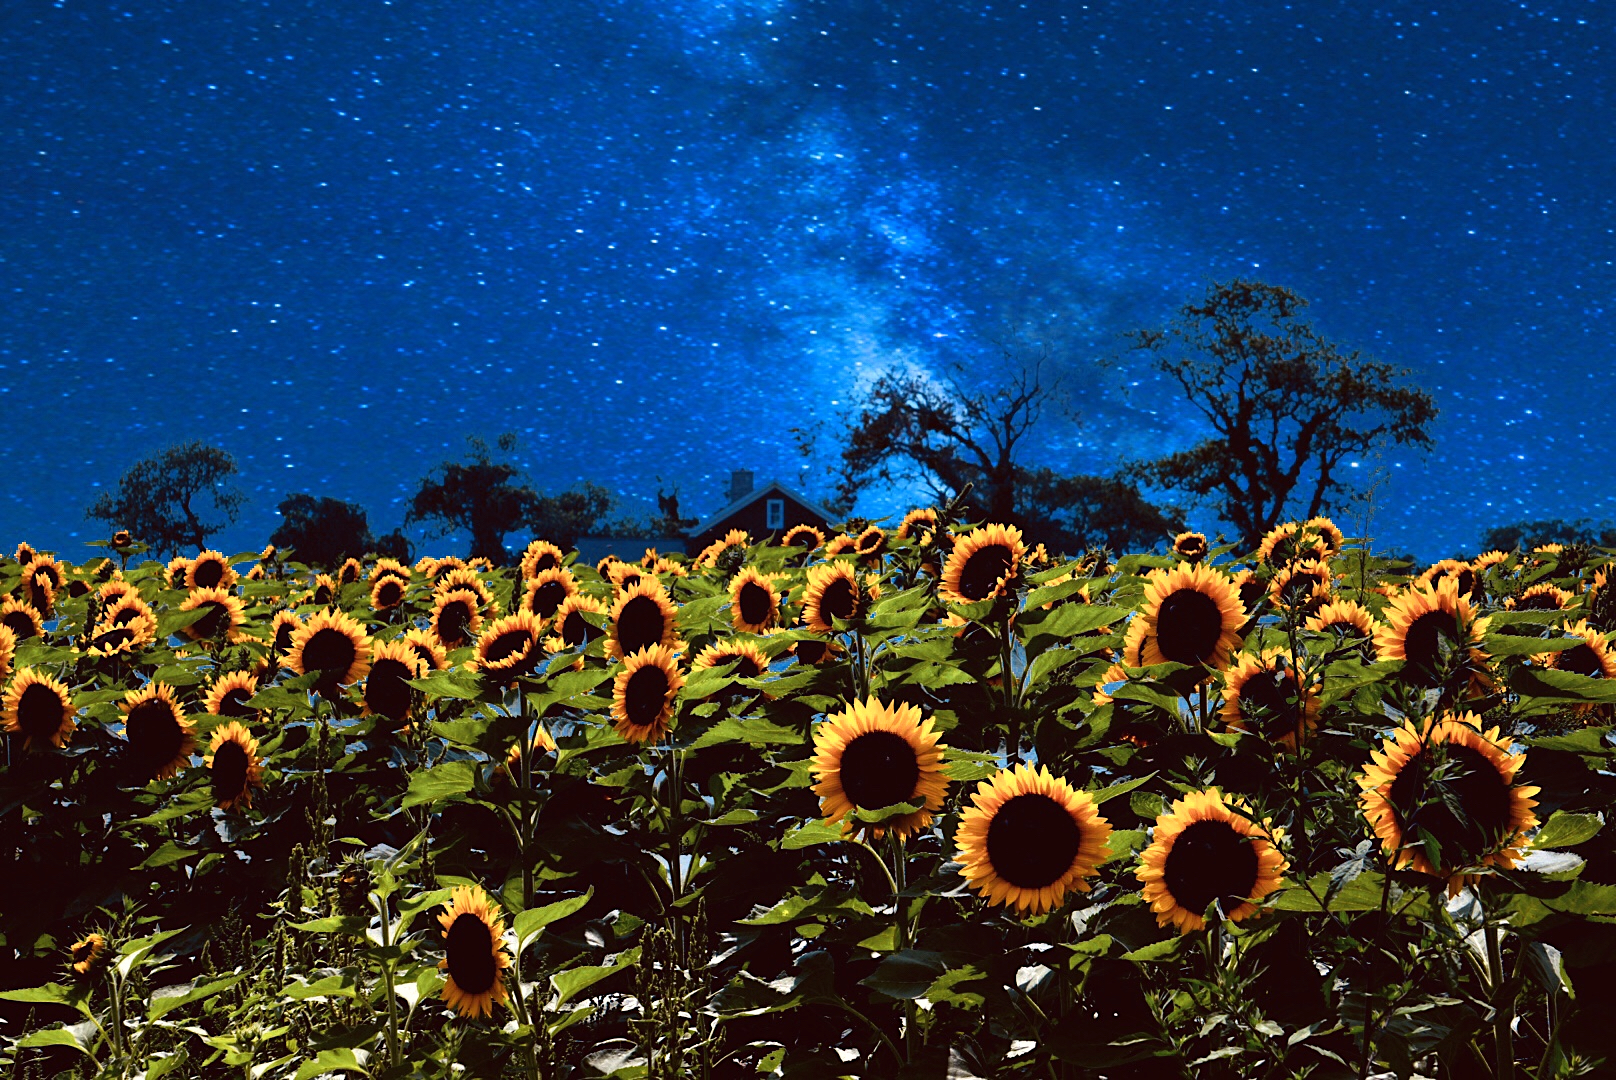 NightofSunflowers